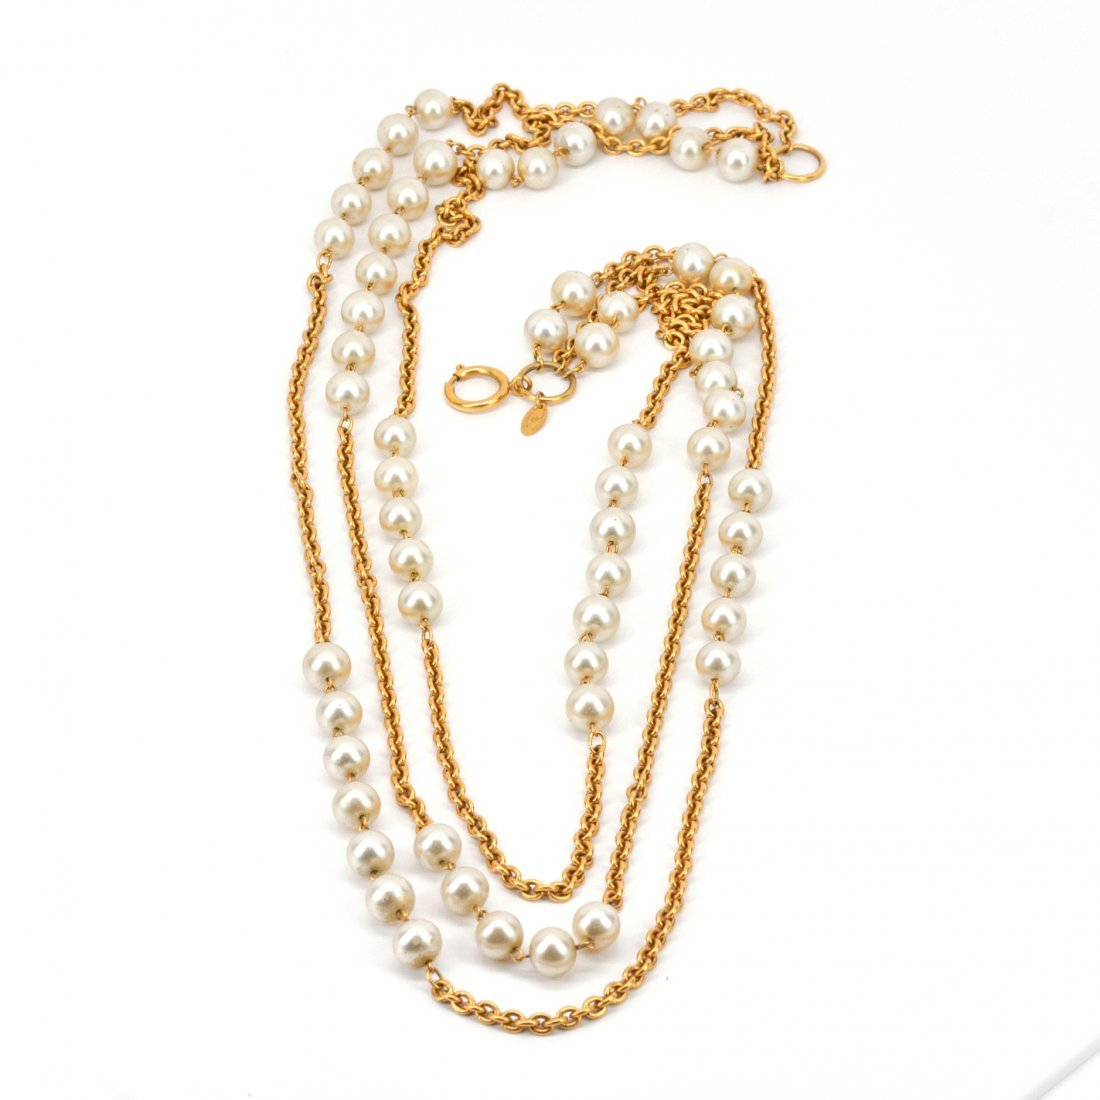 Chanel Pearl Sautoir Necklace - 2